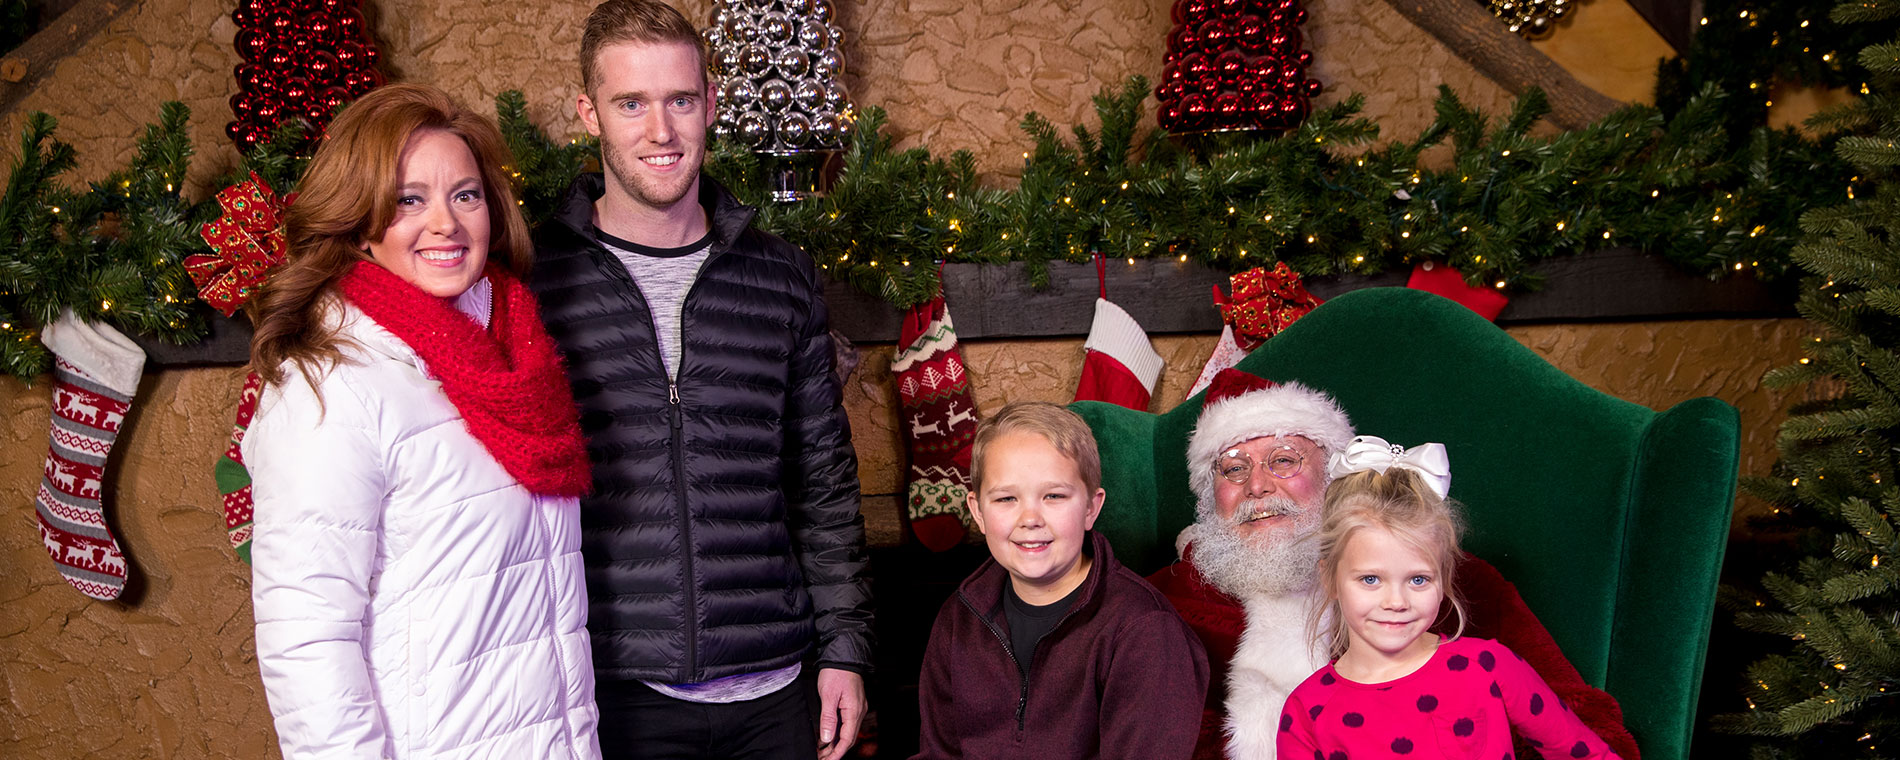 St. Nick's Pics at Kings Island's Holiday Event